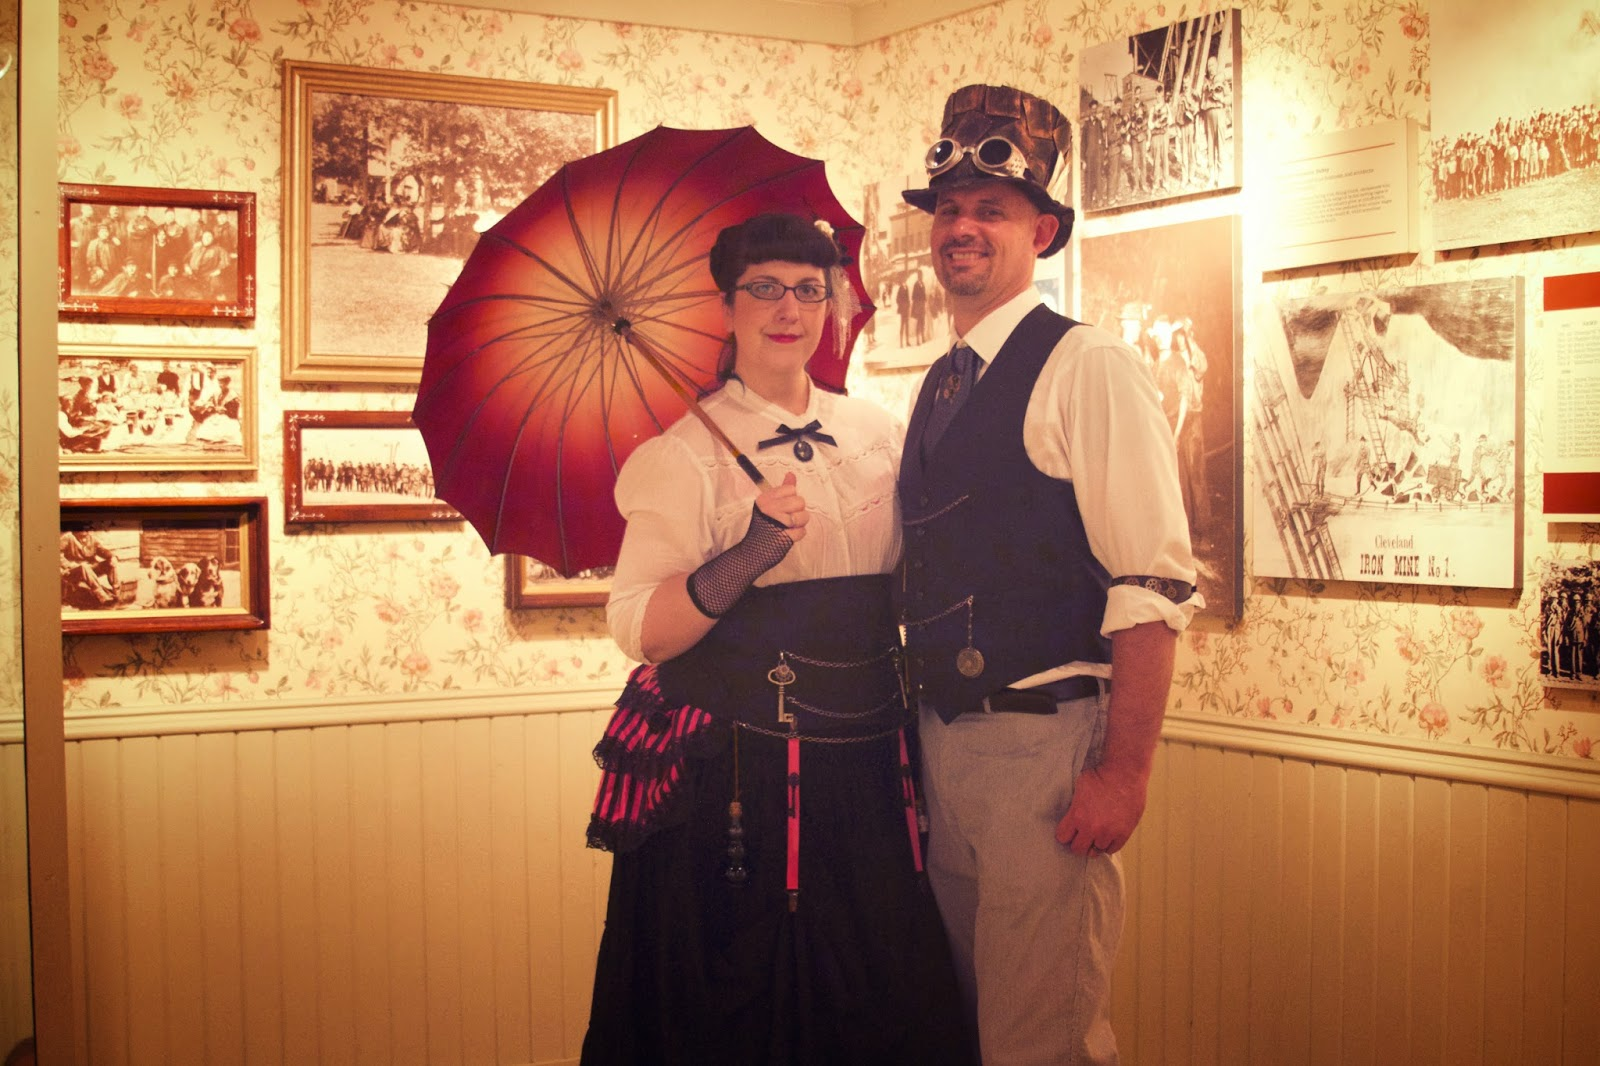 Steampunk adventures, Michigan Historical Museum. Photos by Tammy Sue Allen Photography.